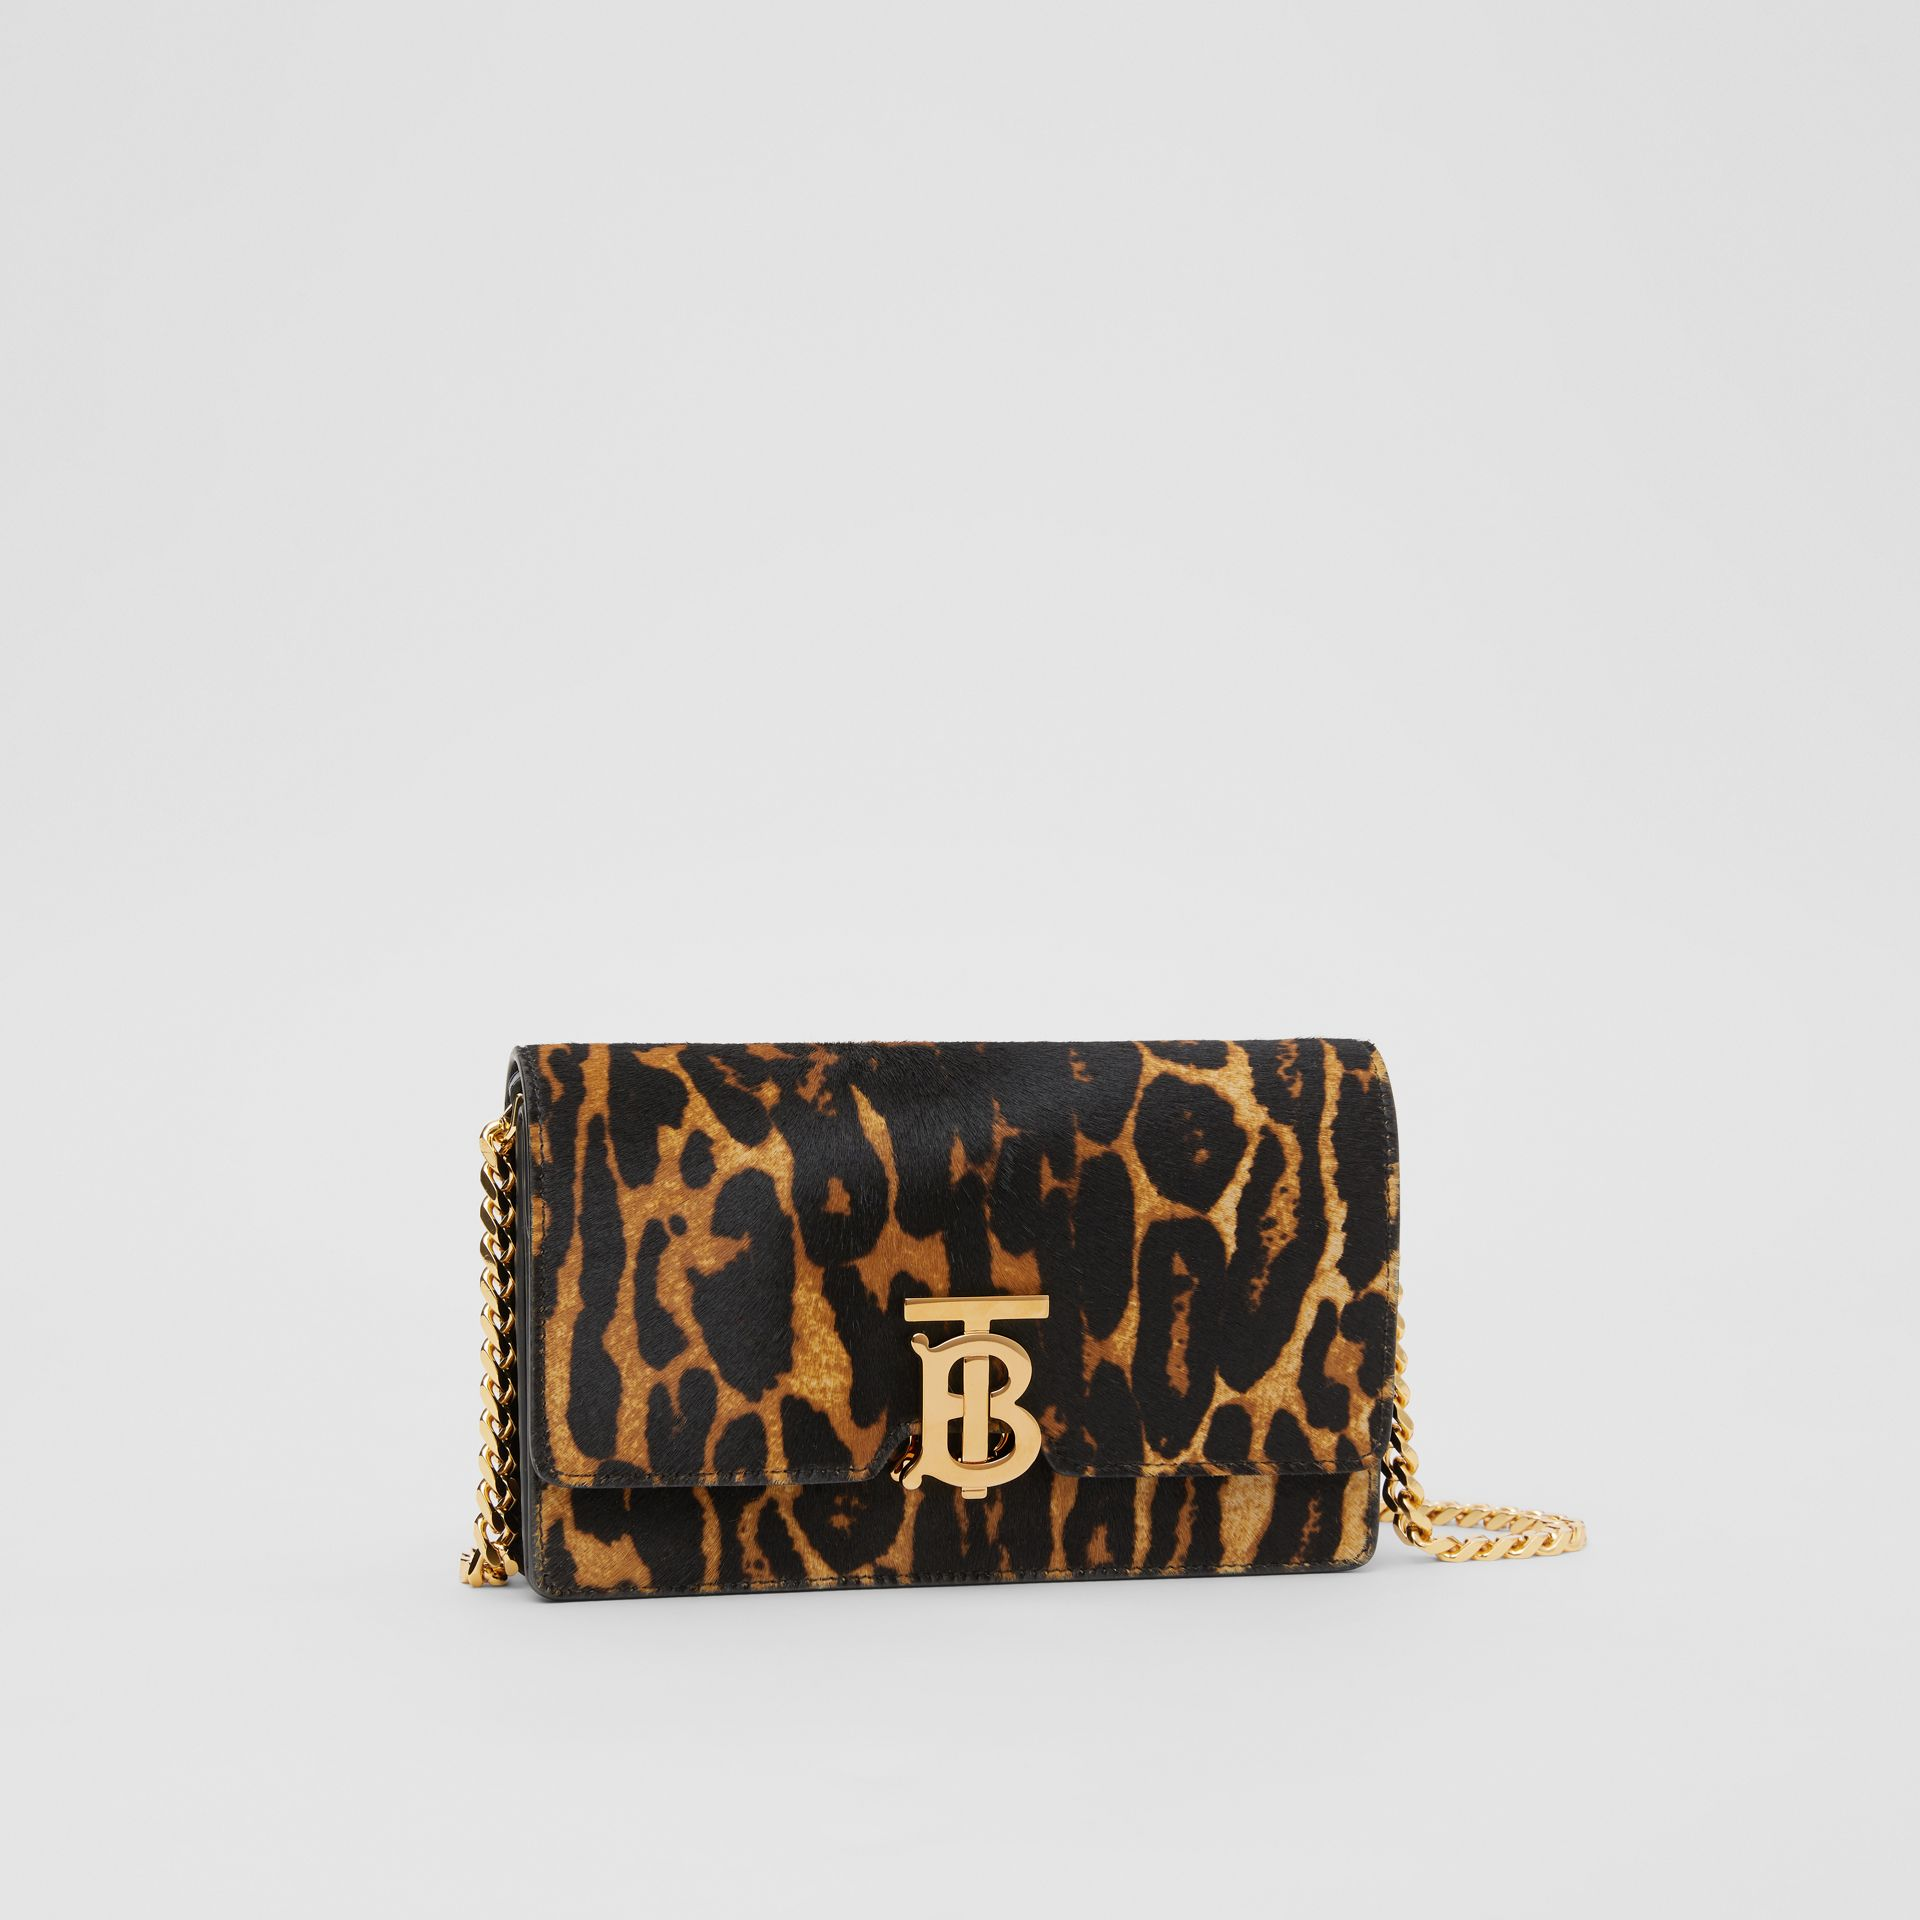 Small Leopard Print Calf Hair Shoulder Bag in Dark Mustard - Women | Burberry United Kingdom - gallery image 6